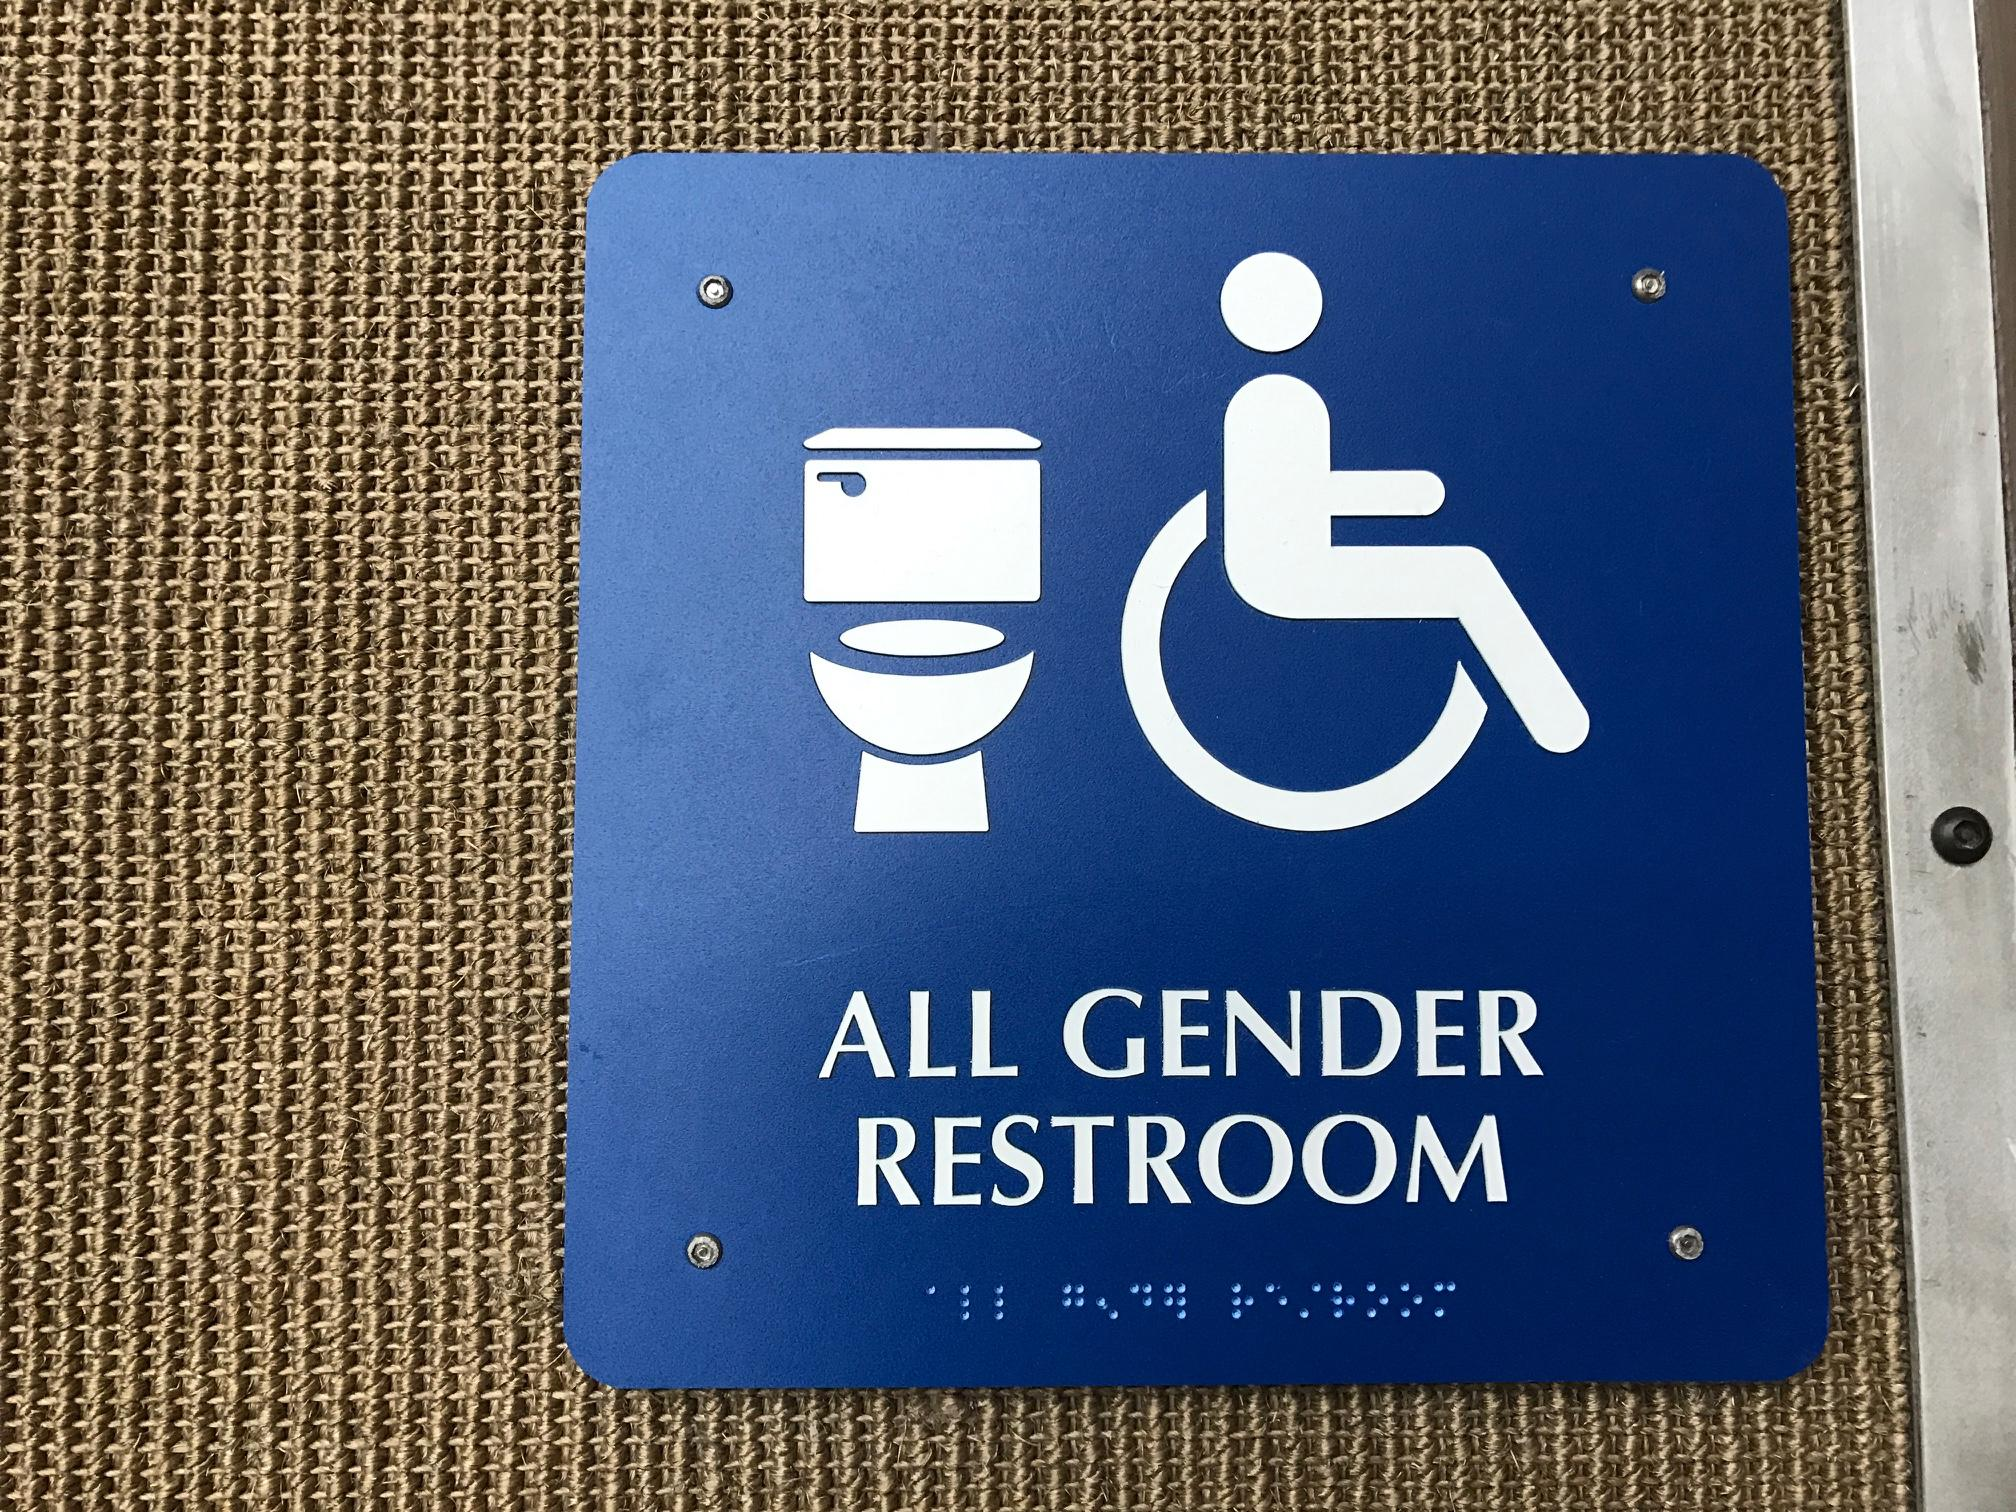 Gender Neutral Bathroom Sign At The Austin Bergstrom Airport In